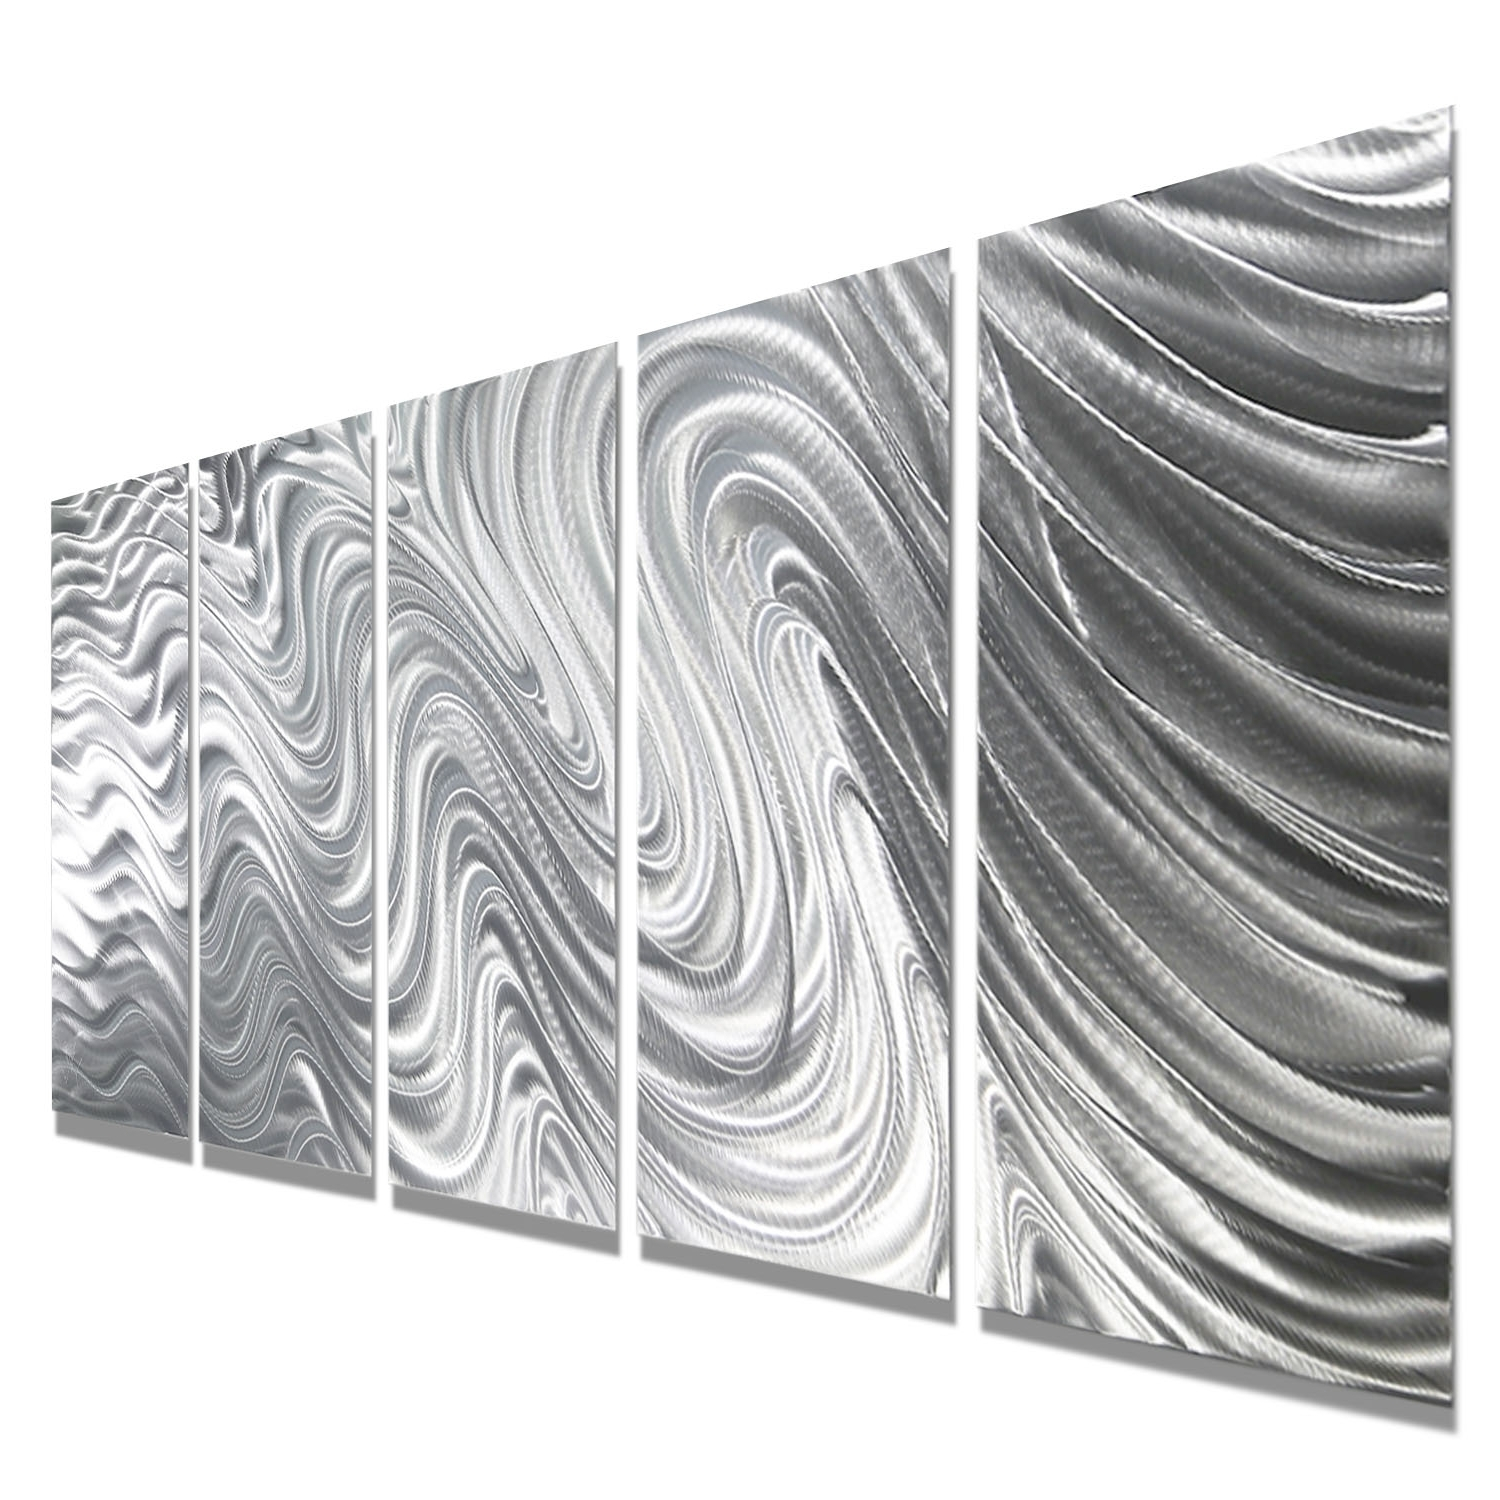 Silver Metal Wall Art Within 2017 Mirage – Silver Metal Wall Art – 5 Panel Wall Décorjon Allen (View 16 of 20)